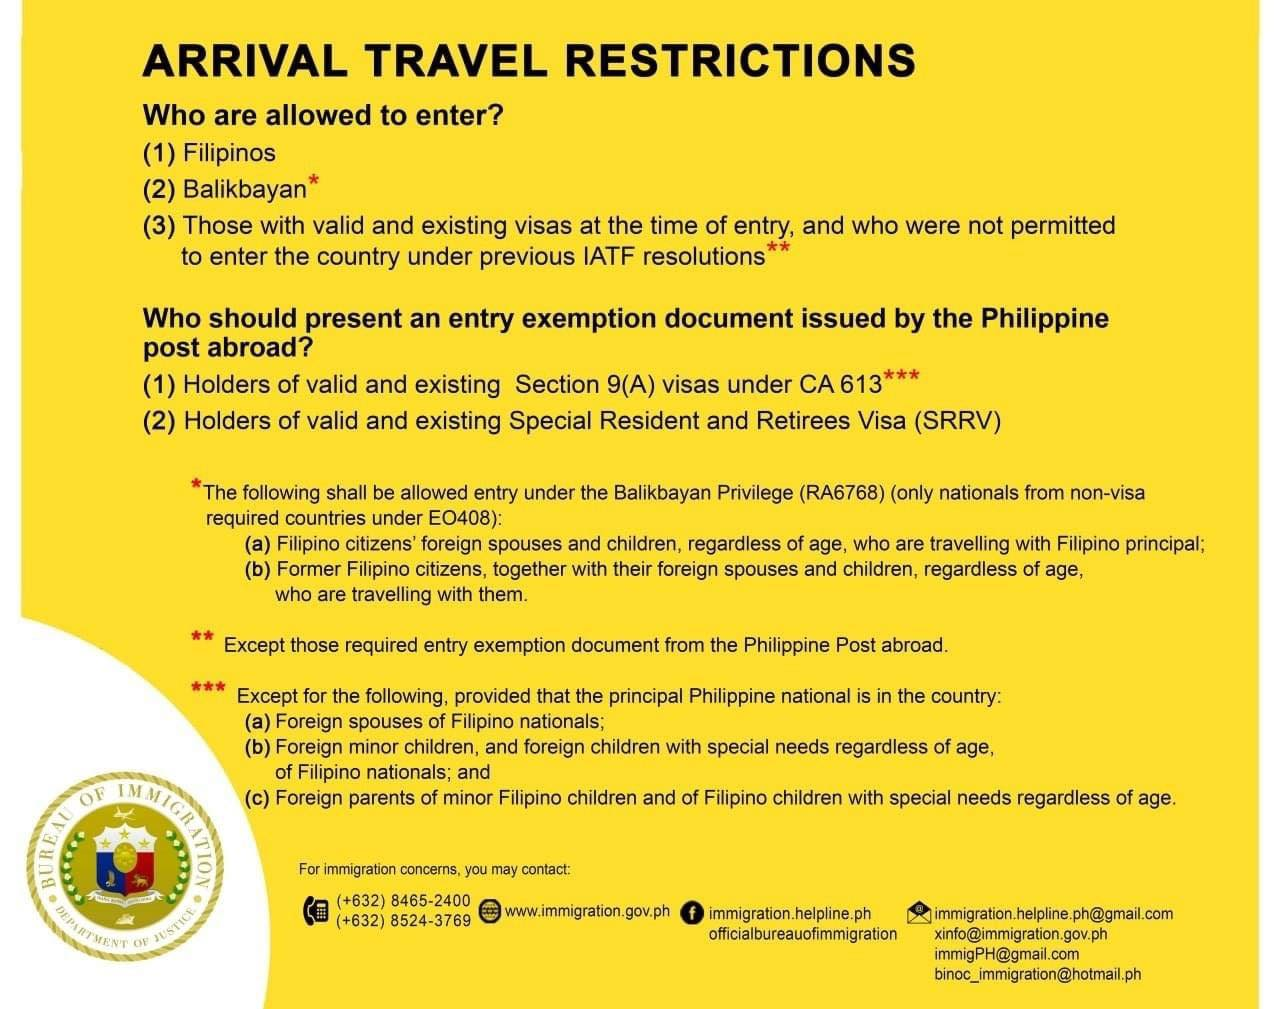 Philippines Arrival Travel Restrictions Infographic